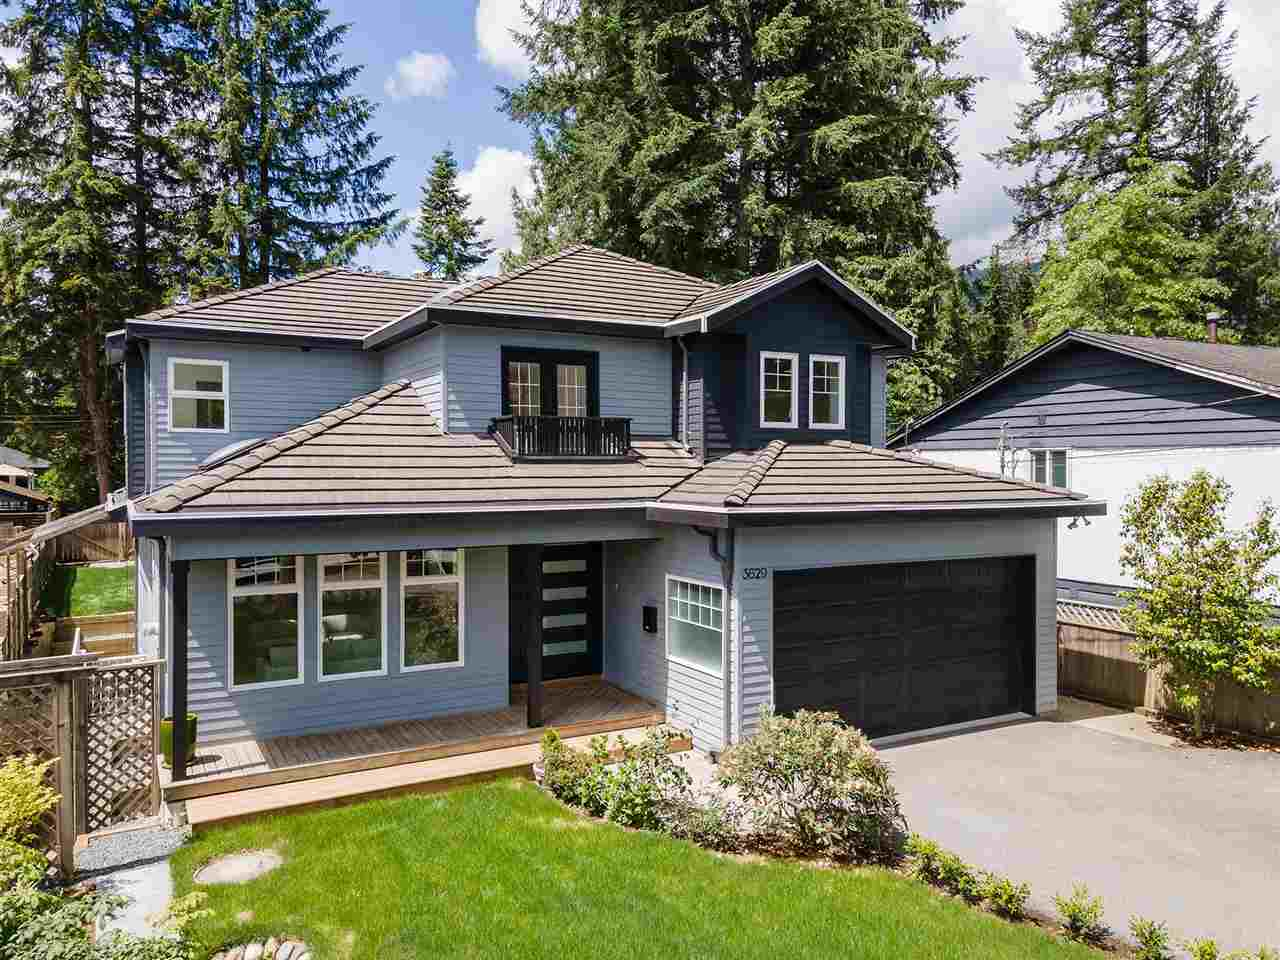 3629 MCEWEN AVENUE - Lynn Valley House/Single Family for sale, 7 Bedrooms (R2590986) - #26